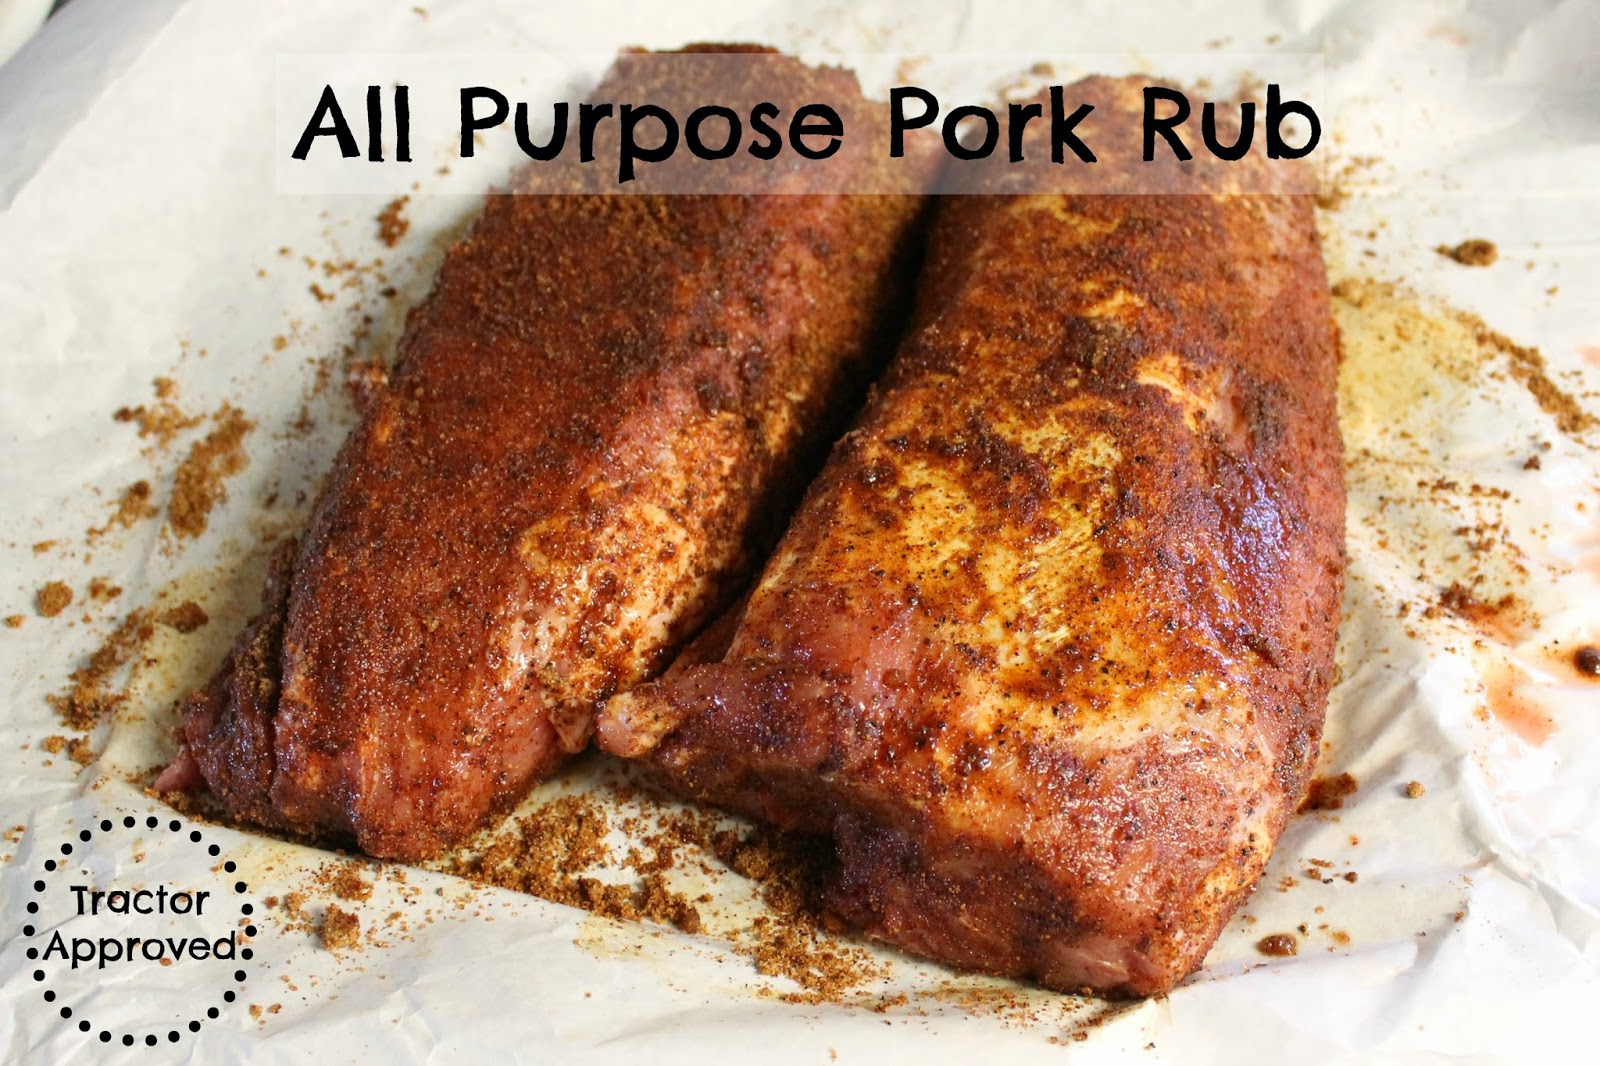 All Purpose Pork Rub Recipe